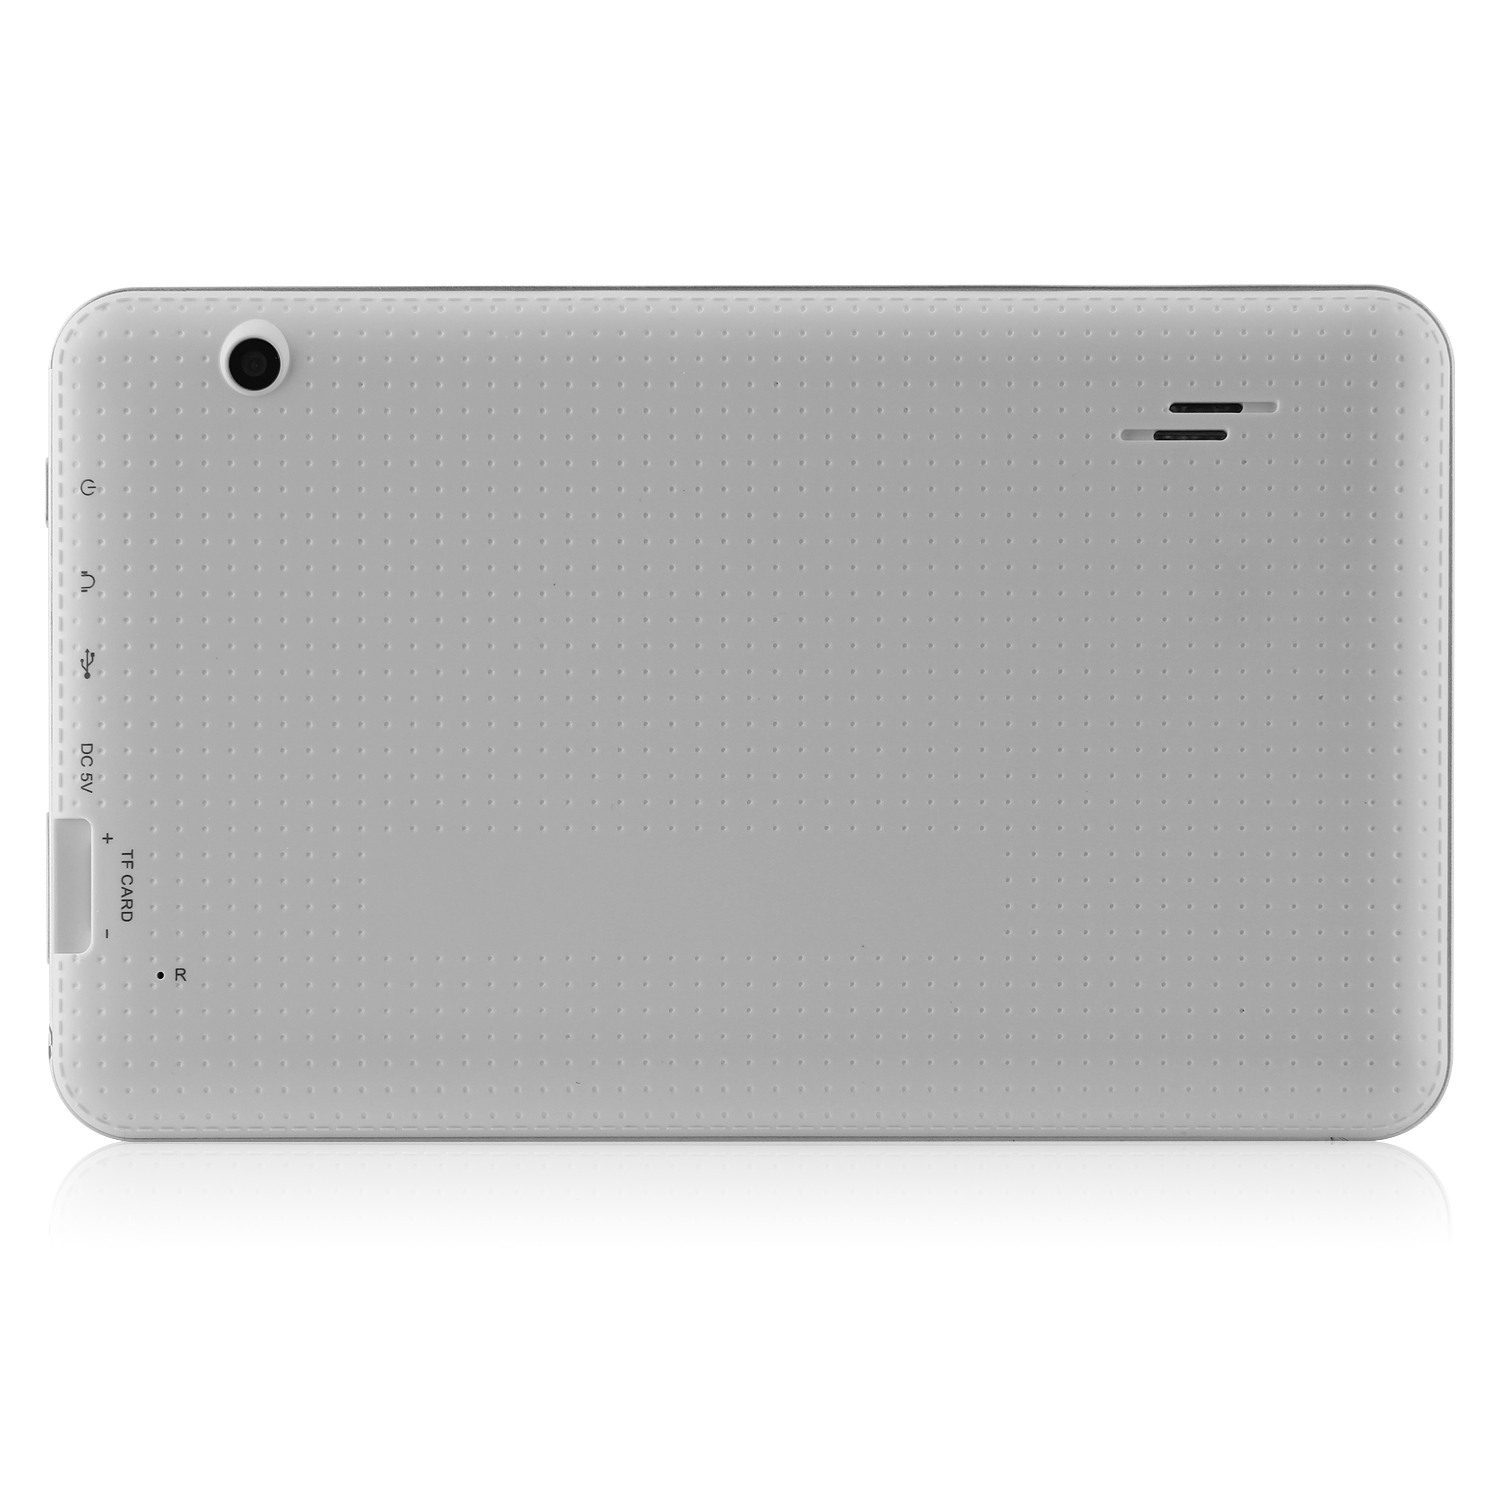 H701 Tablet PC RK3188 Quad Core 7.0 Inch Android 4.4 IPS Screen 8GB White